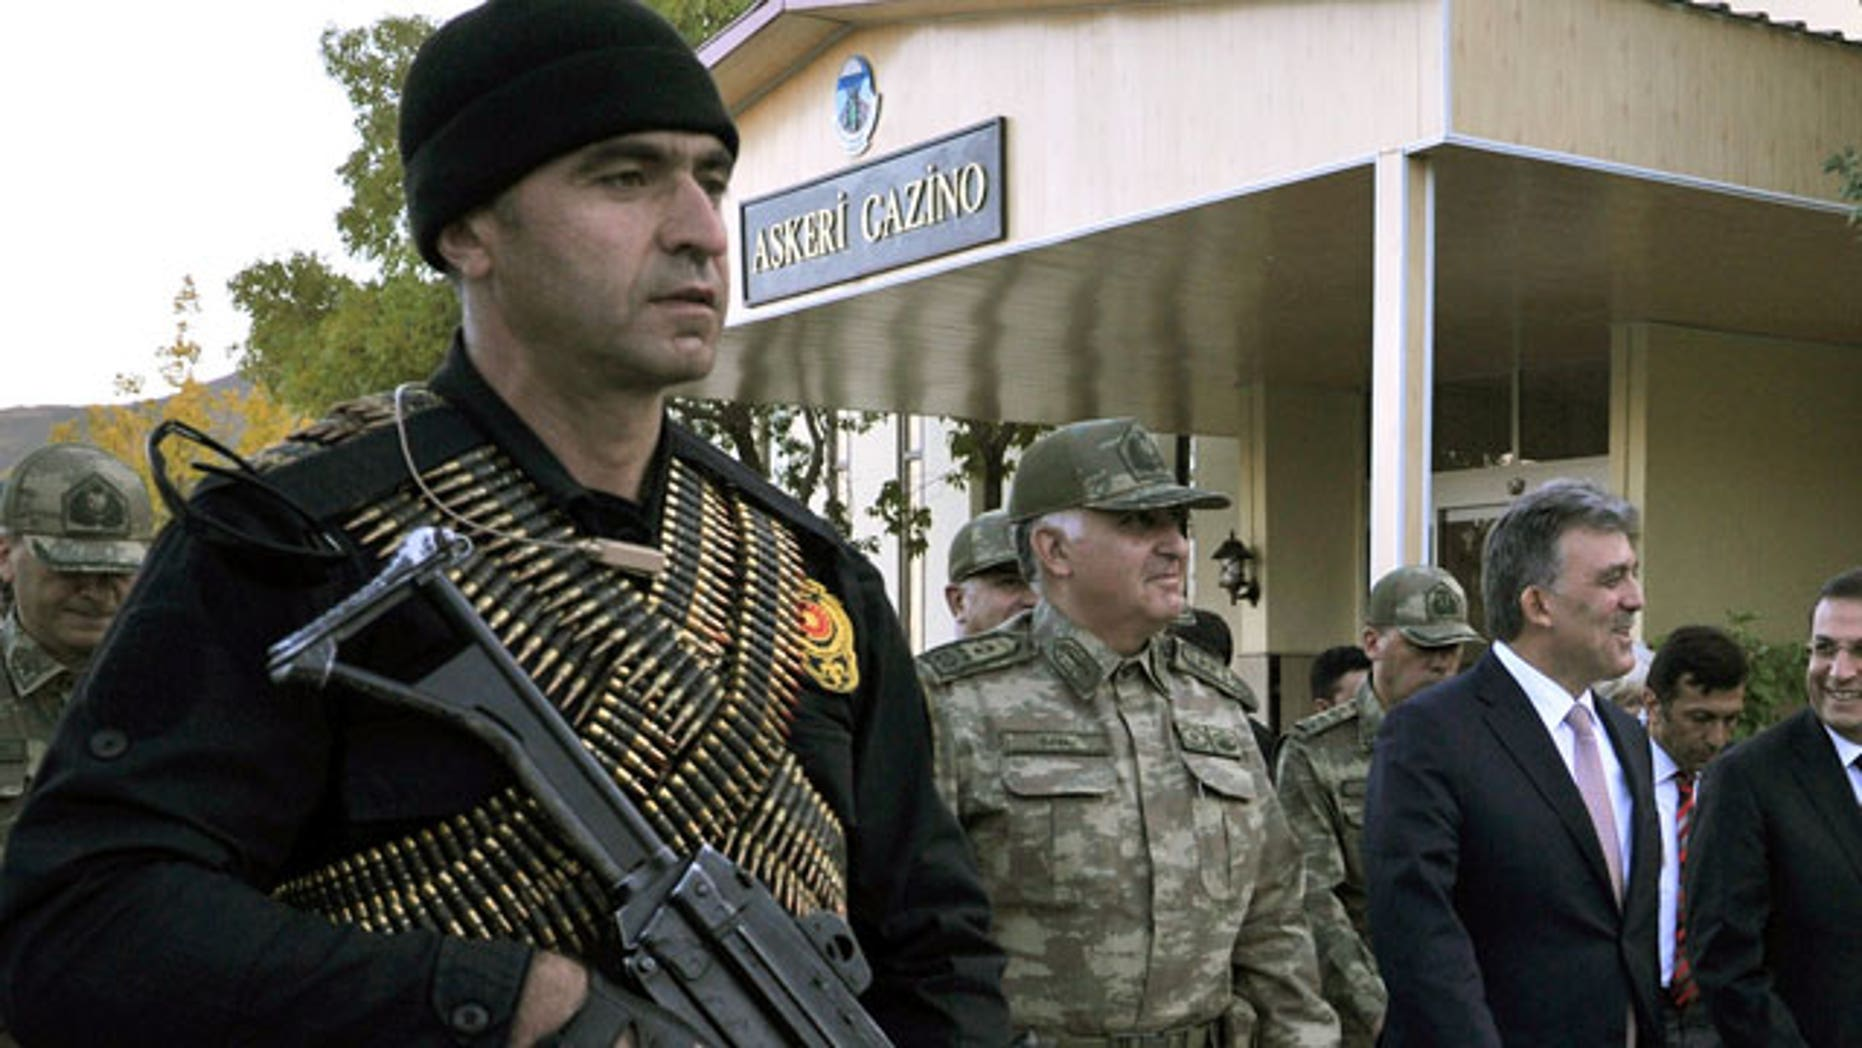 Oct. 14, 2011: Turkish President Abdullah Gul, right, and Chief of Staff Gen. Necdet Ozel, center, walk in Hakkari, Turkey as they visit Turkish troops at the border with Iraq.